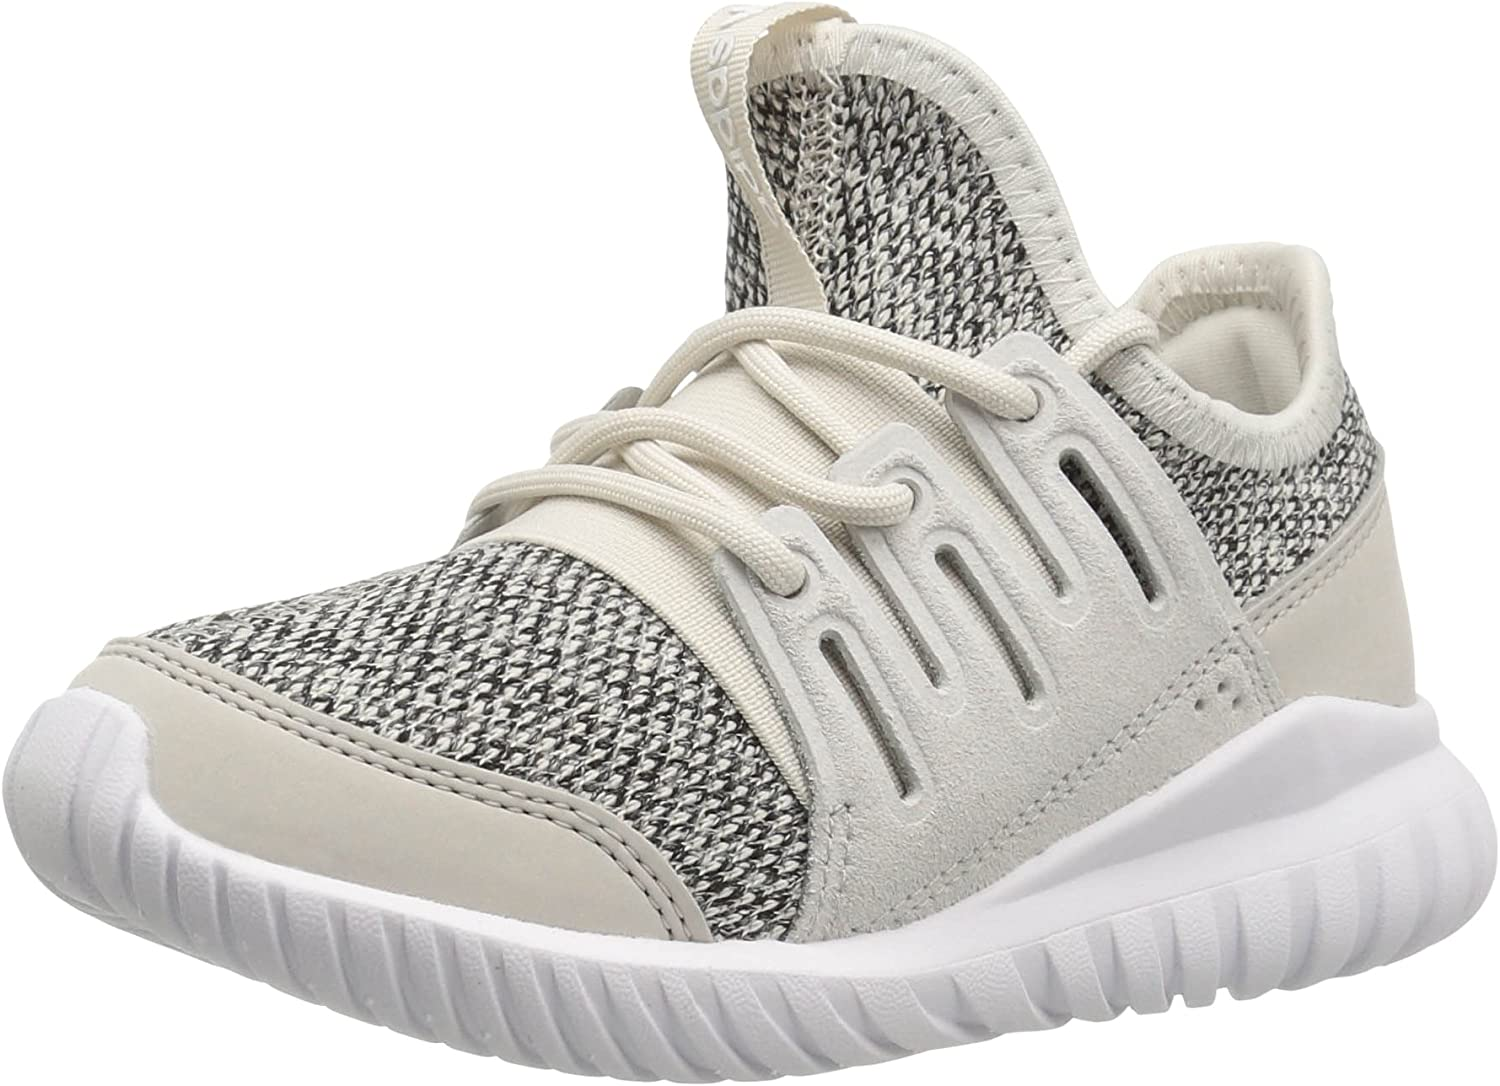 adidas Originals Kids Tubular Radial C Sneaker